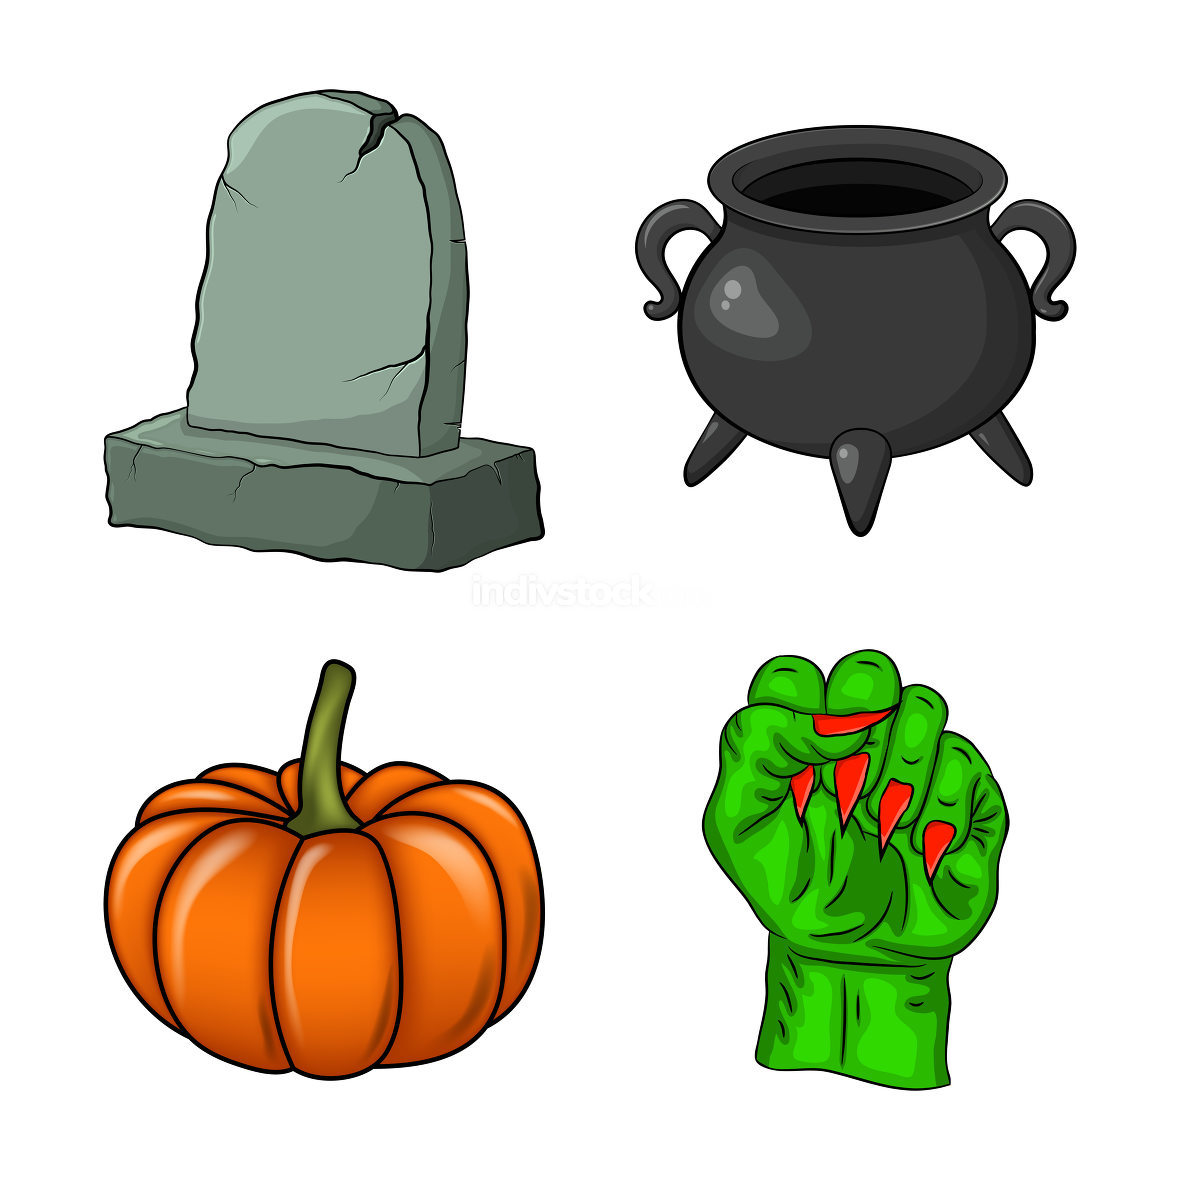 Halloween icon set. Spooky vectors collection for october holiday